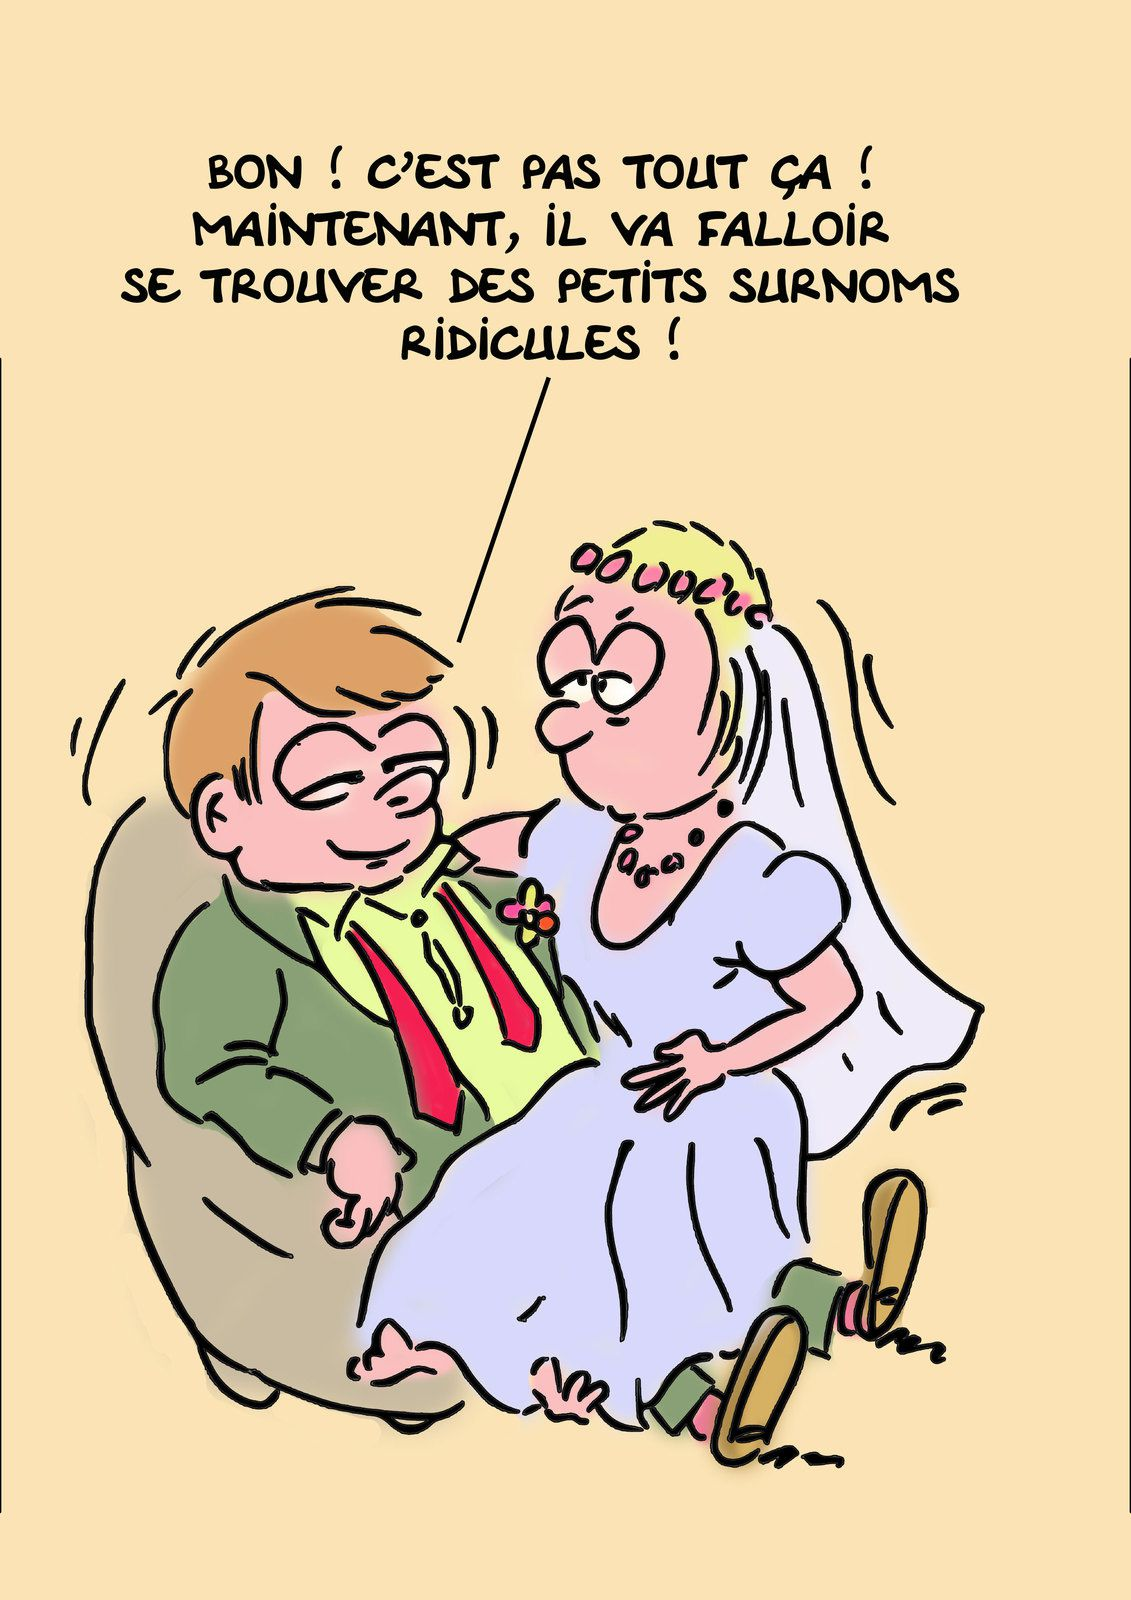 Affaire matrimoniale